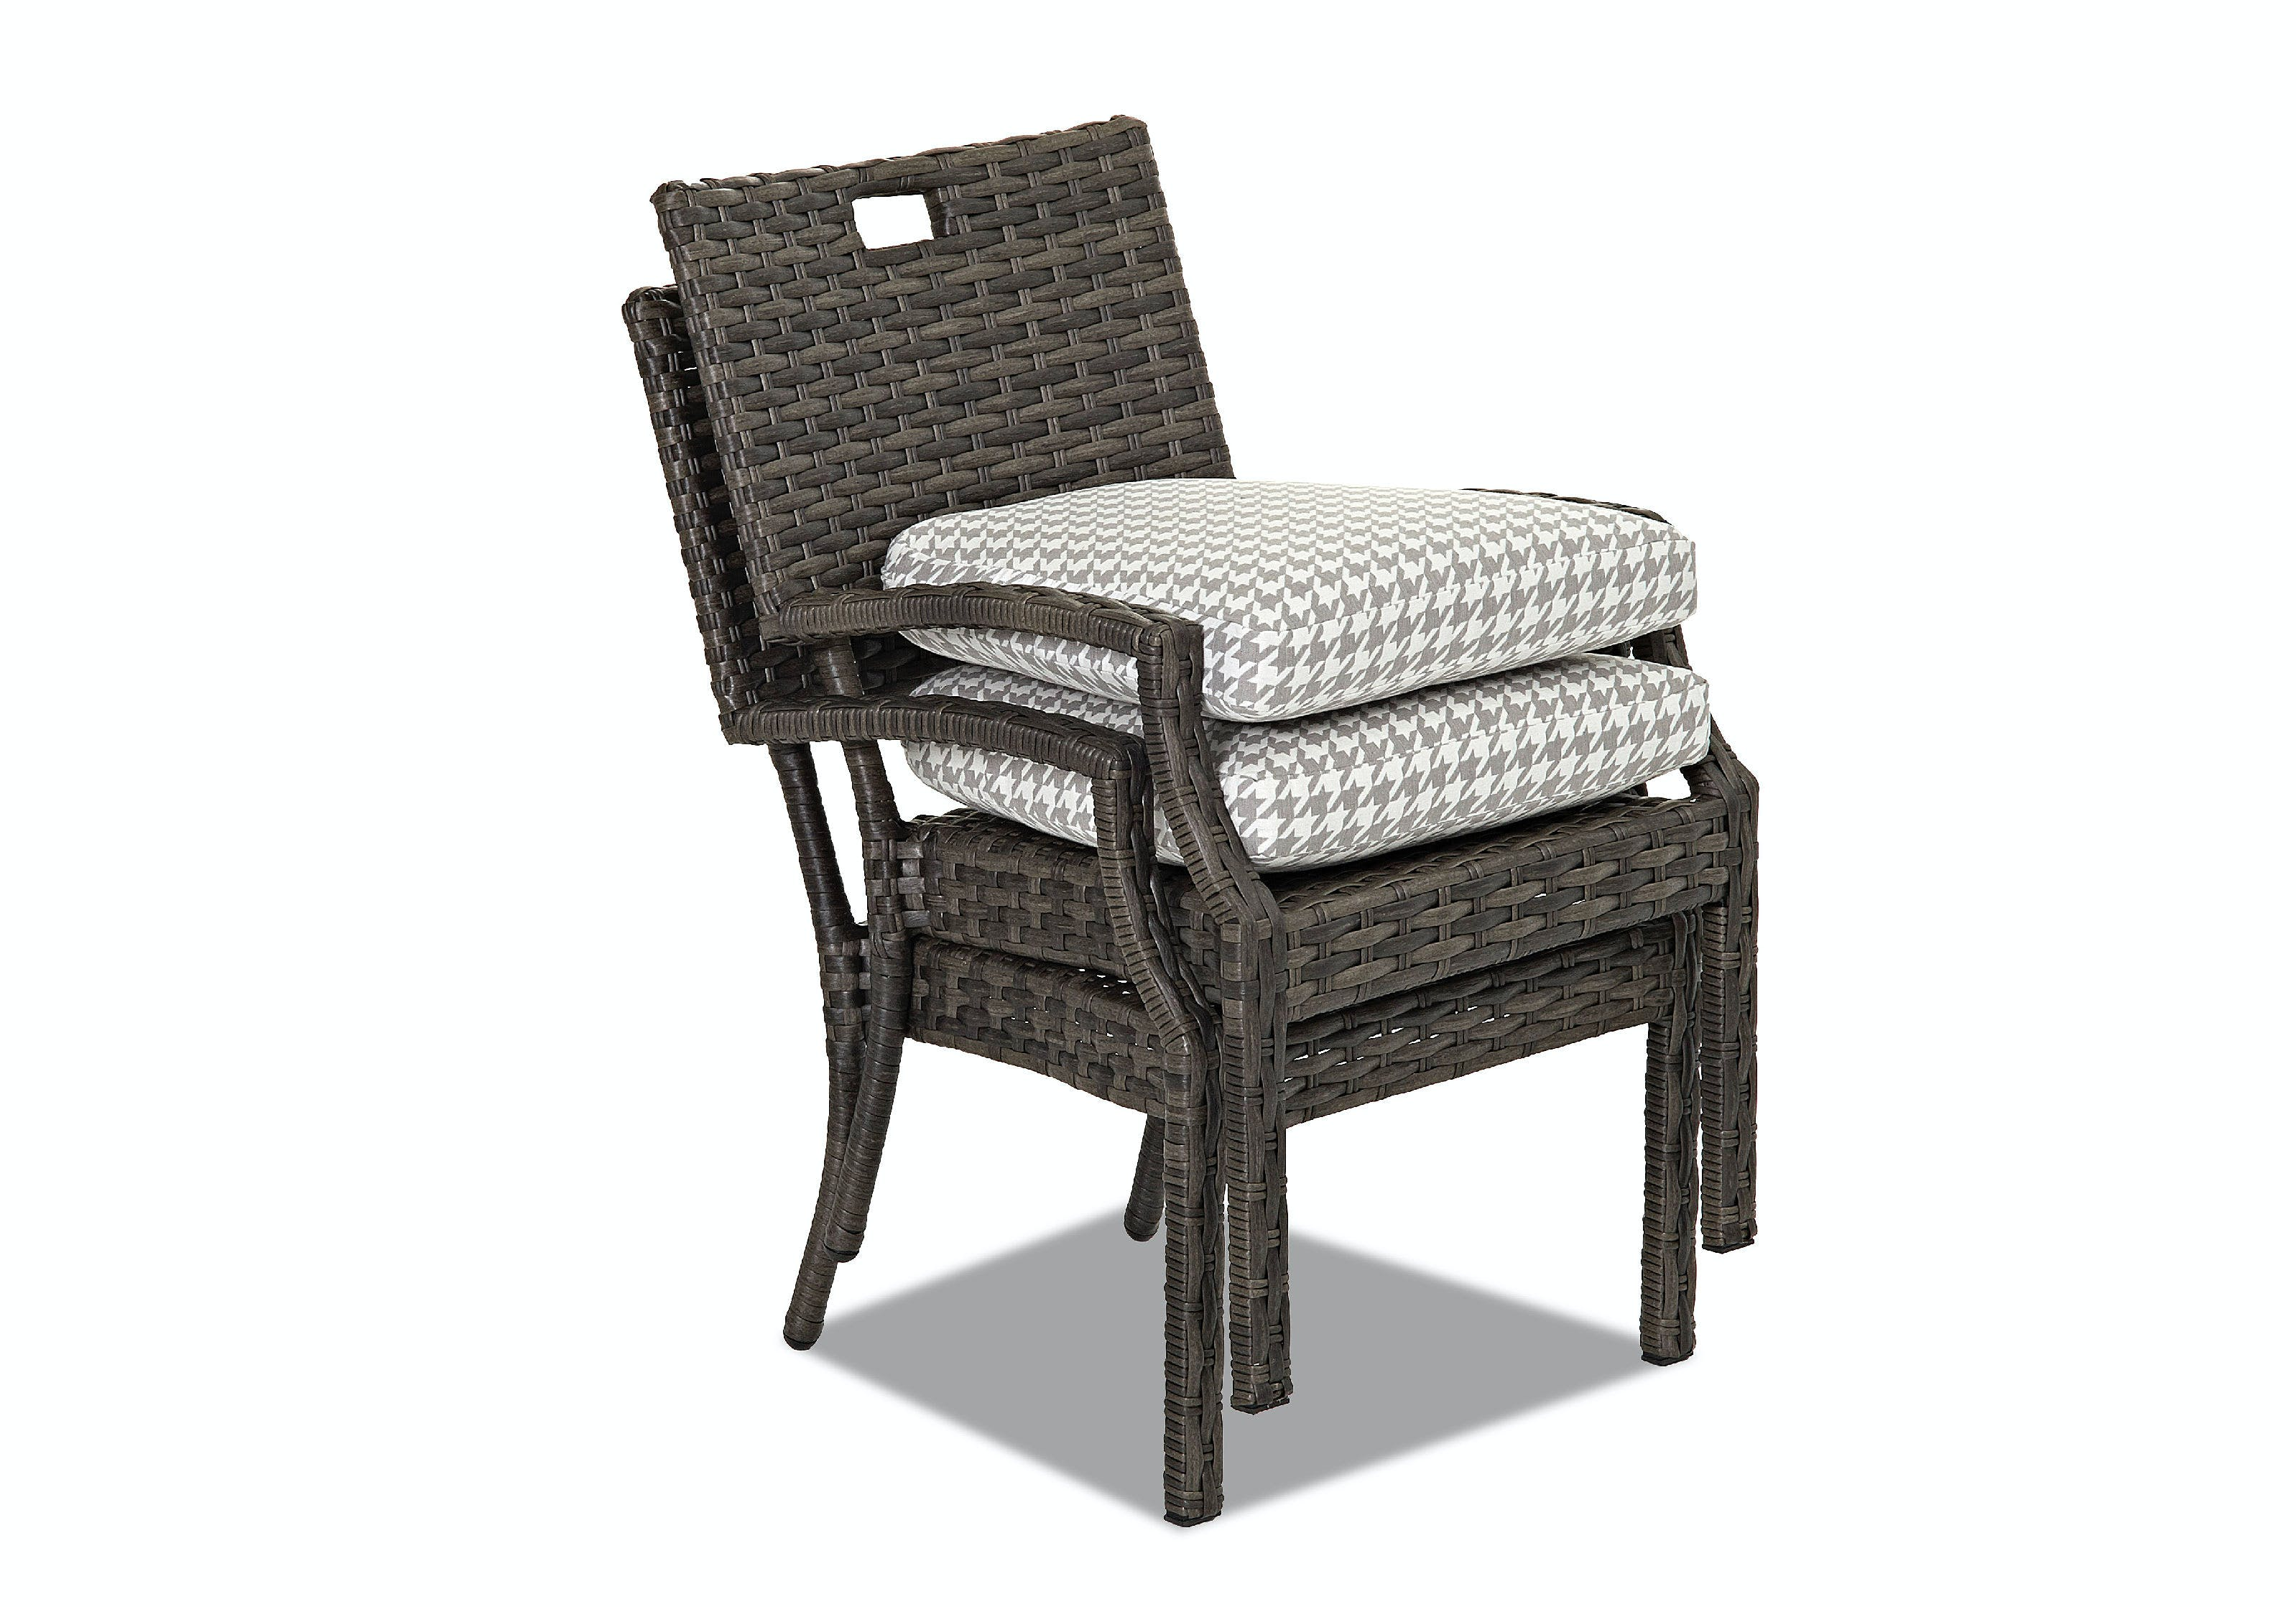 Klaussner Outdoor Outdoorpatio Cascade Stackable Dining Chair Cekw5000stdc Walter E Smithe Furniture Design